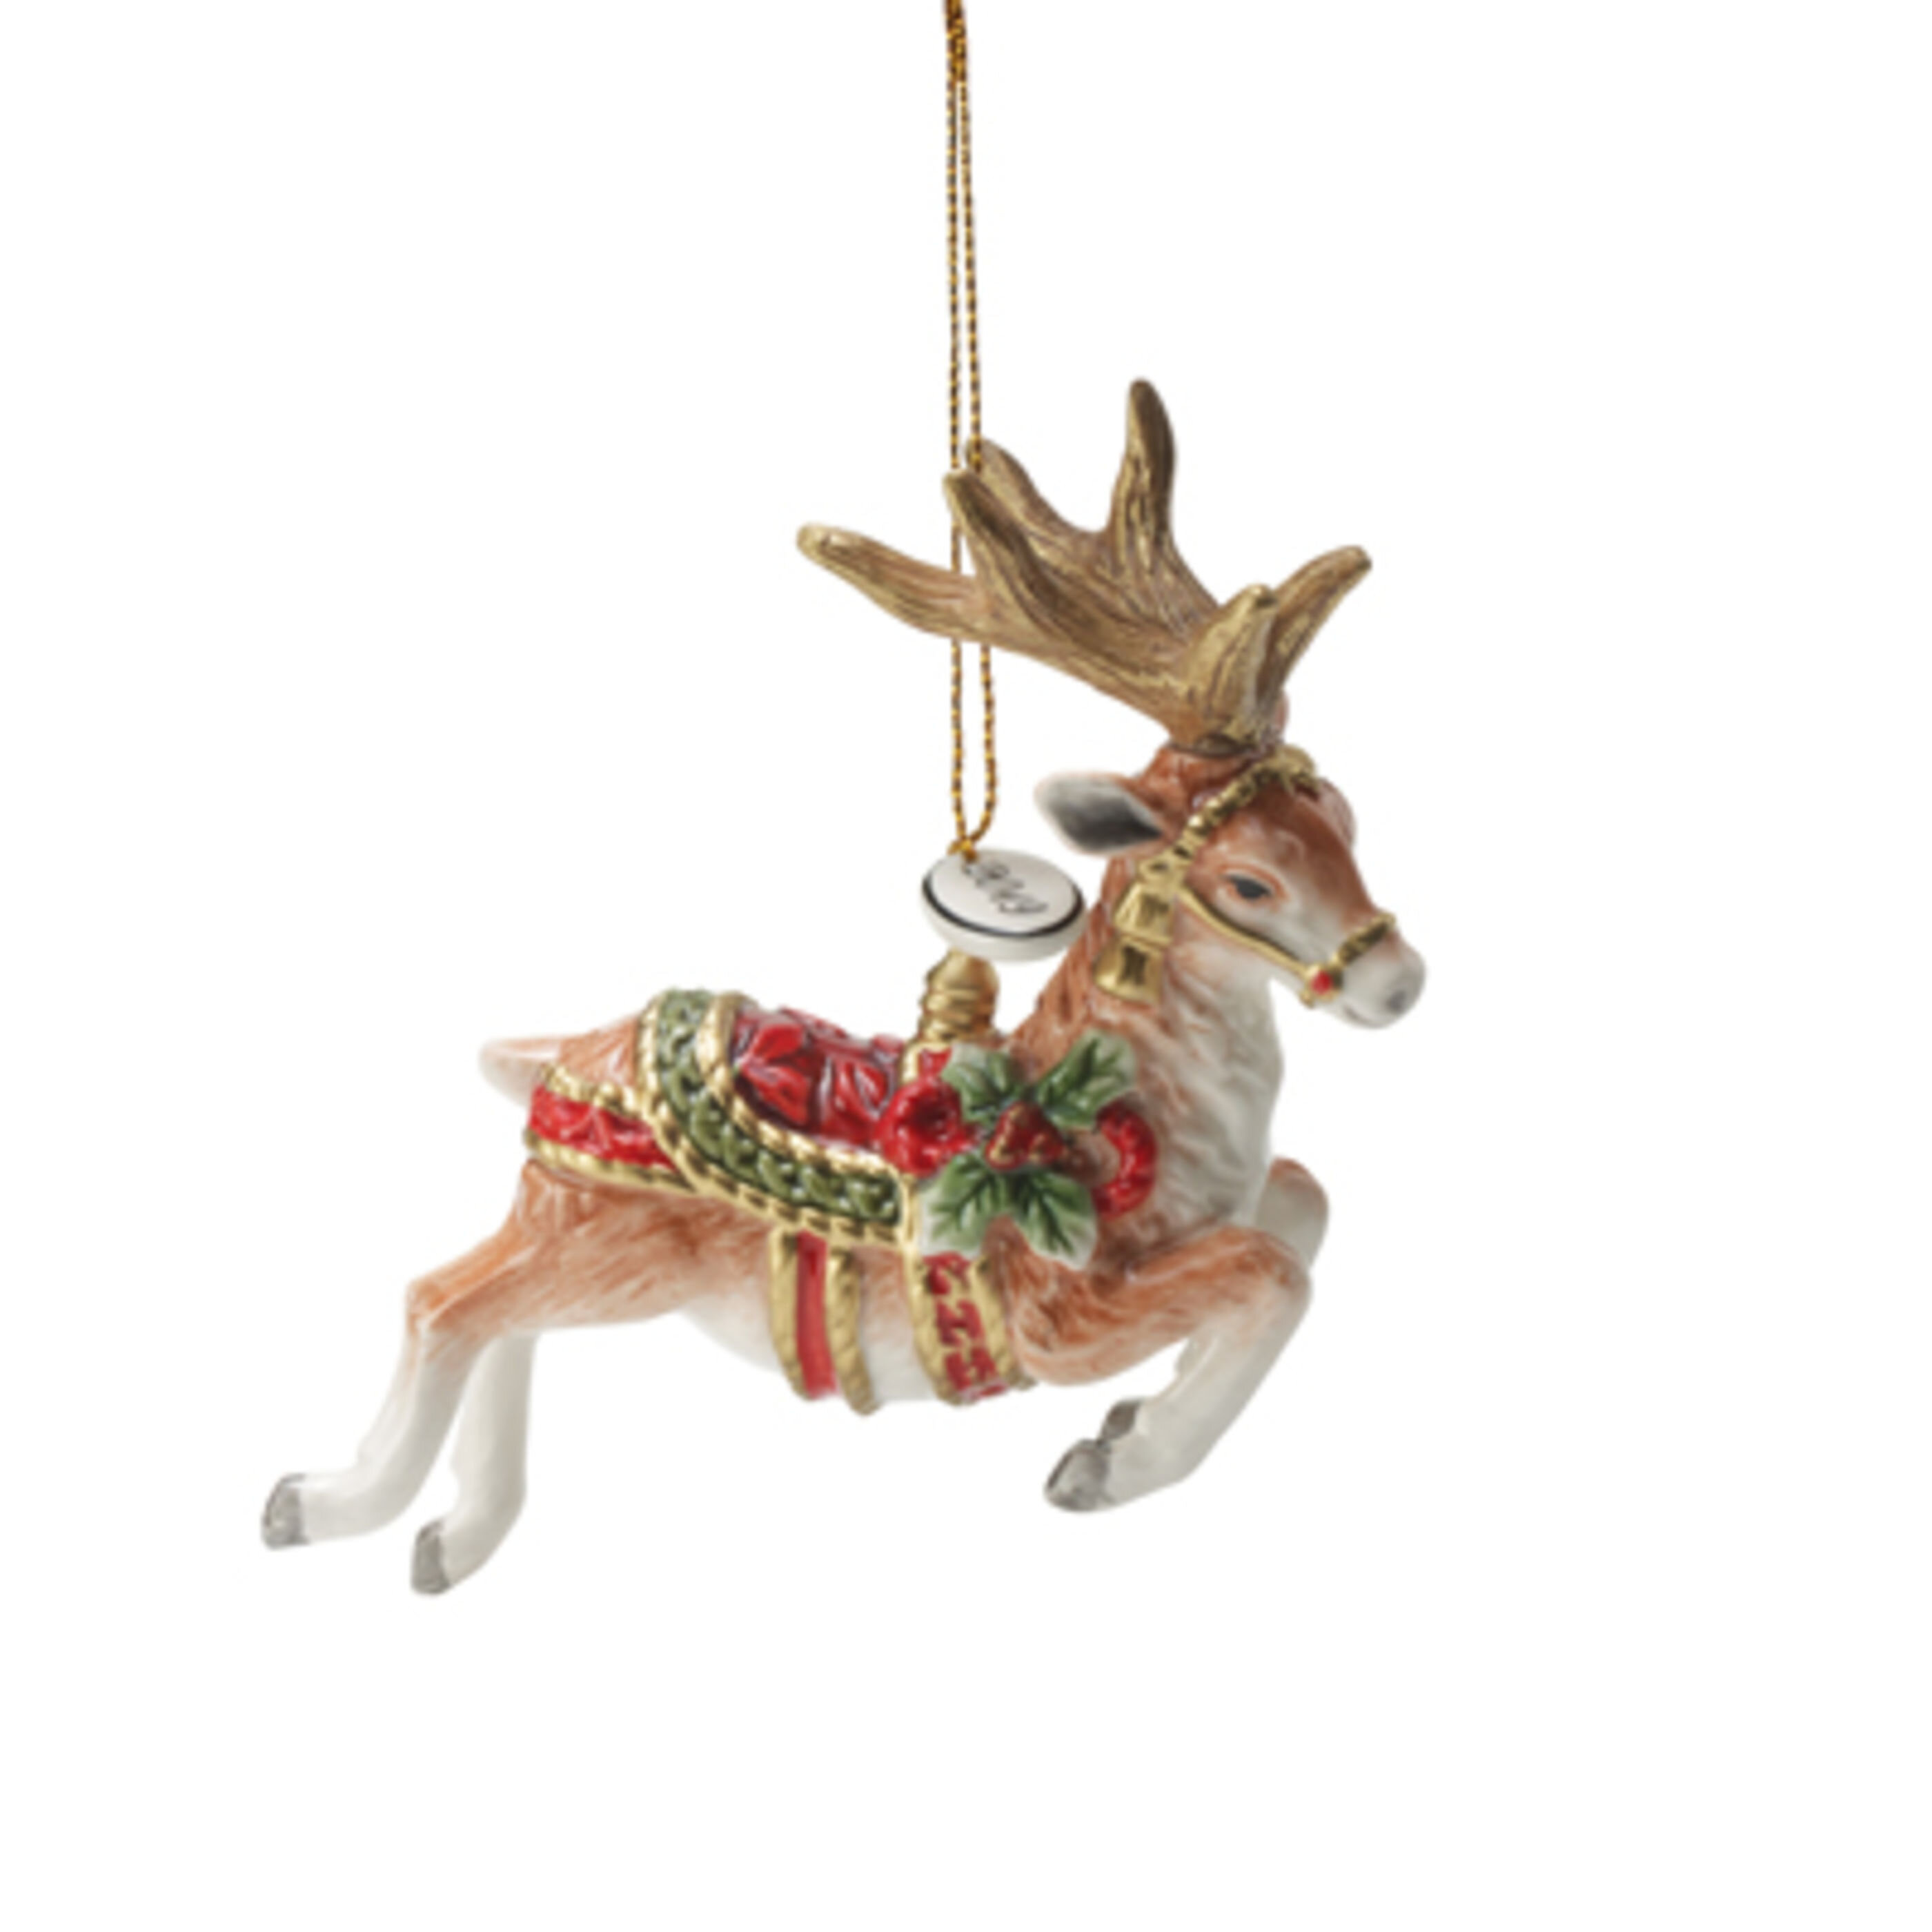 Fitz And Floyd Holiday Home Dated 2020 Hanging Figurine Ornament Reviews Wayfair